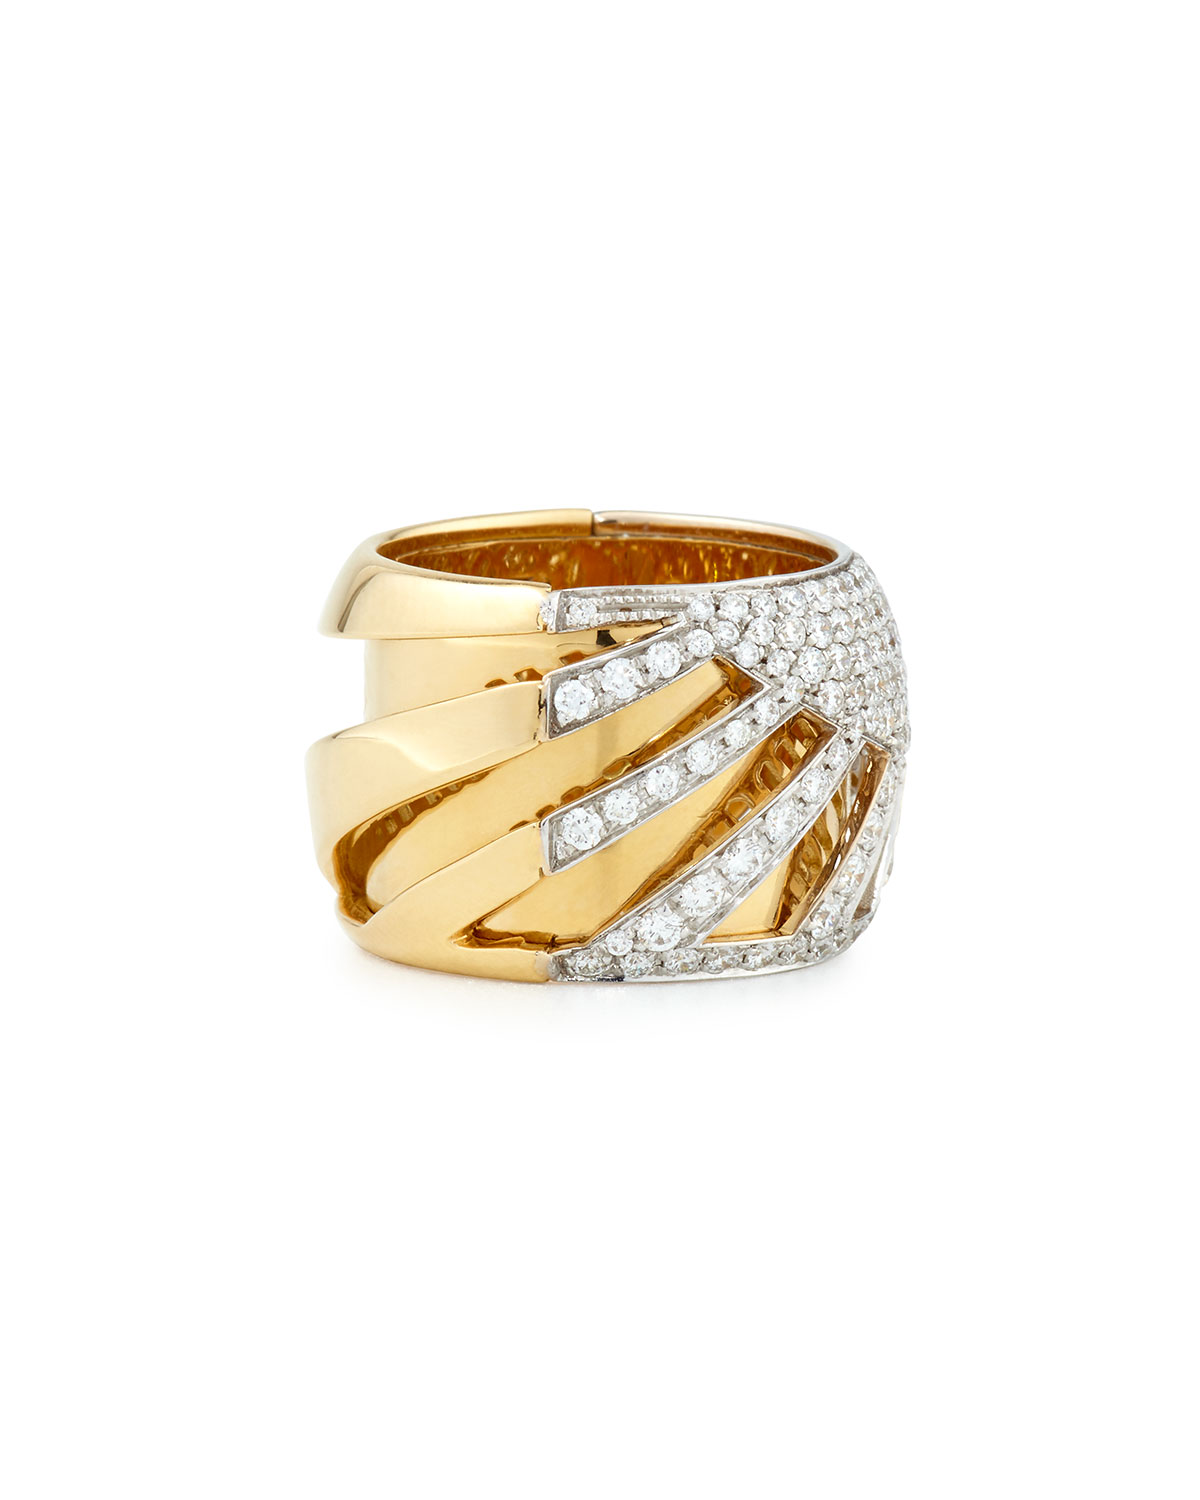 Miseno 18k Gold Diamond Sun Ray Ring bsM449PnB